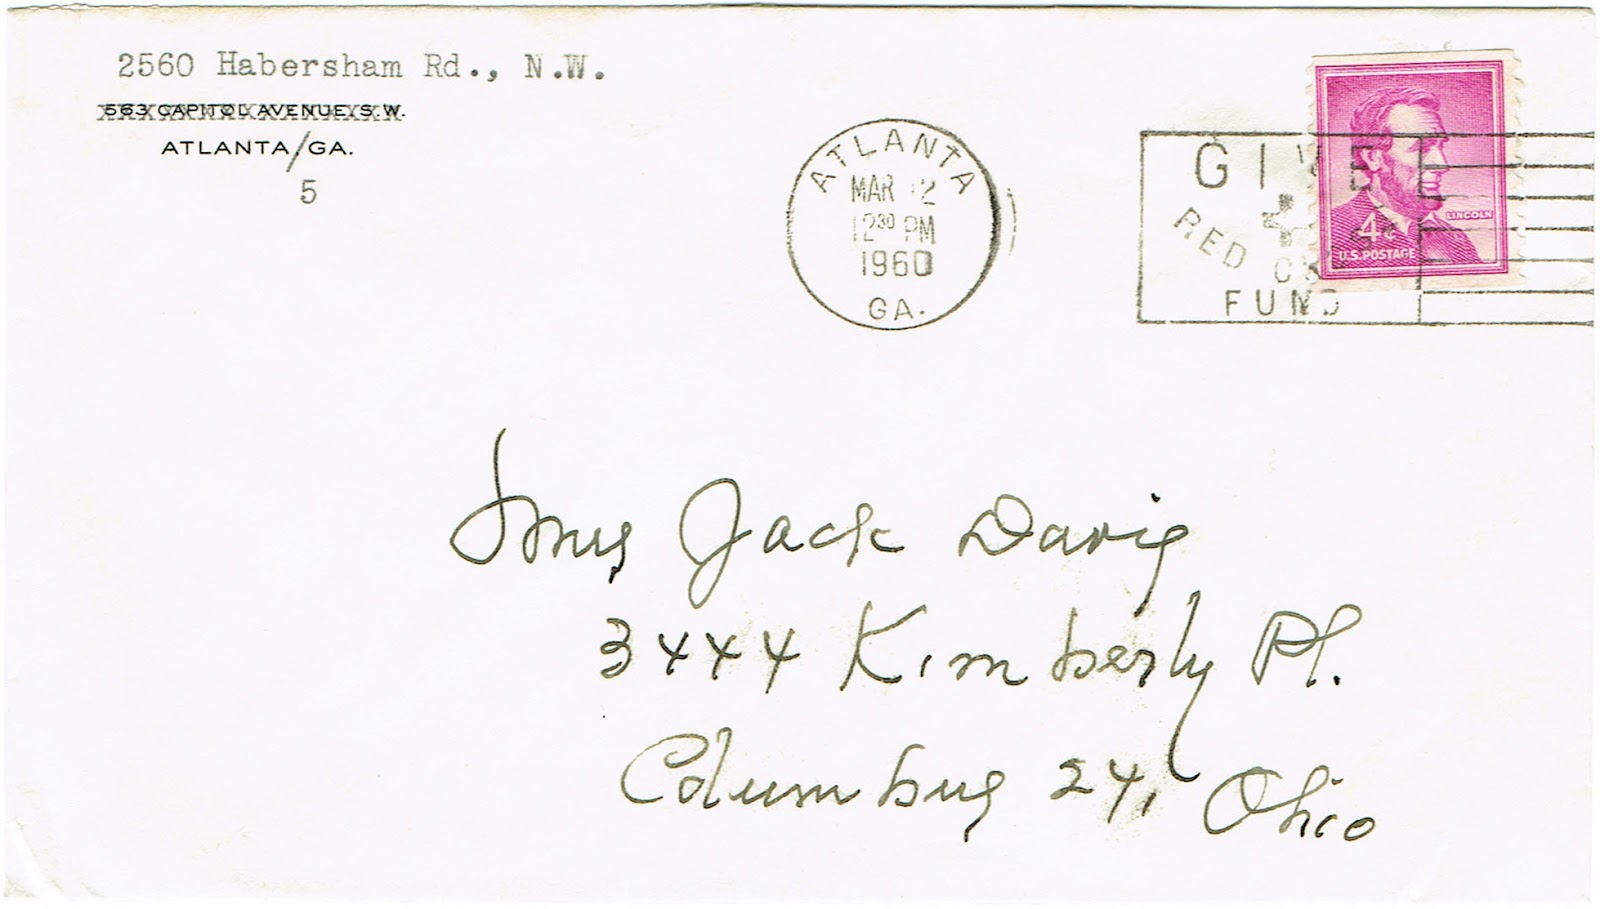 envelope for 1960 letter from Atlanta Georgia to Columbus Ohio regarding the publication of a volume on the Broyles family genealogy